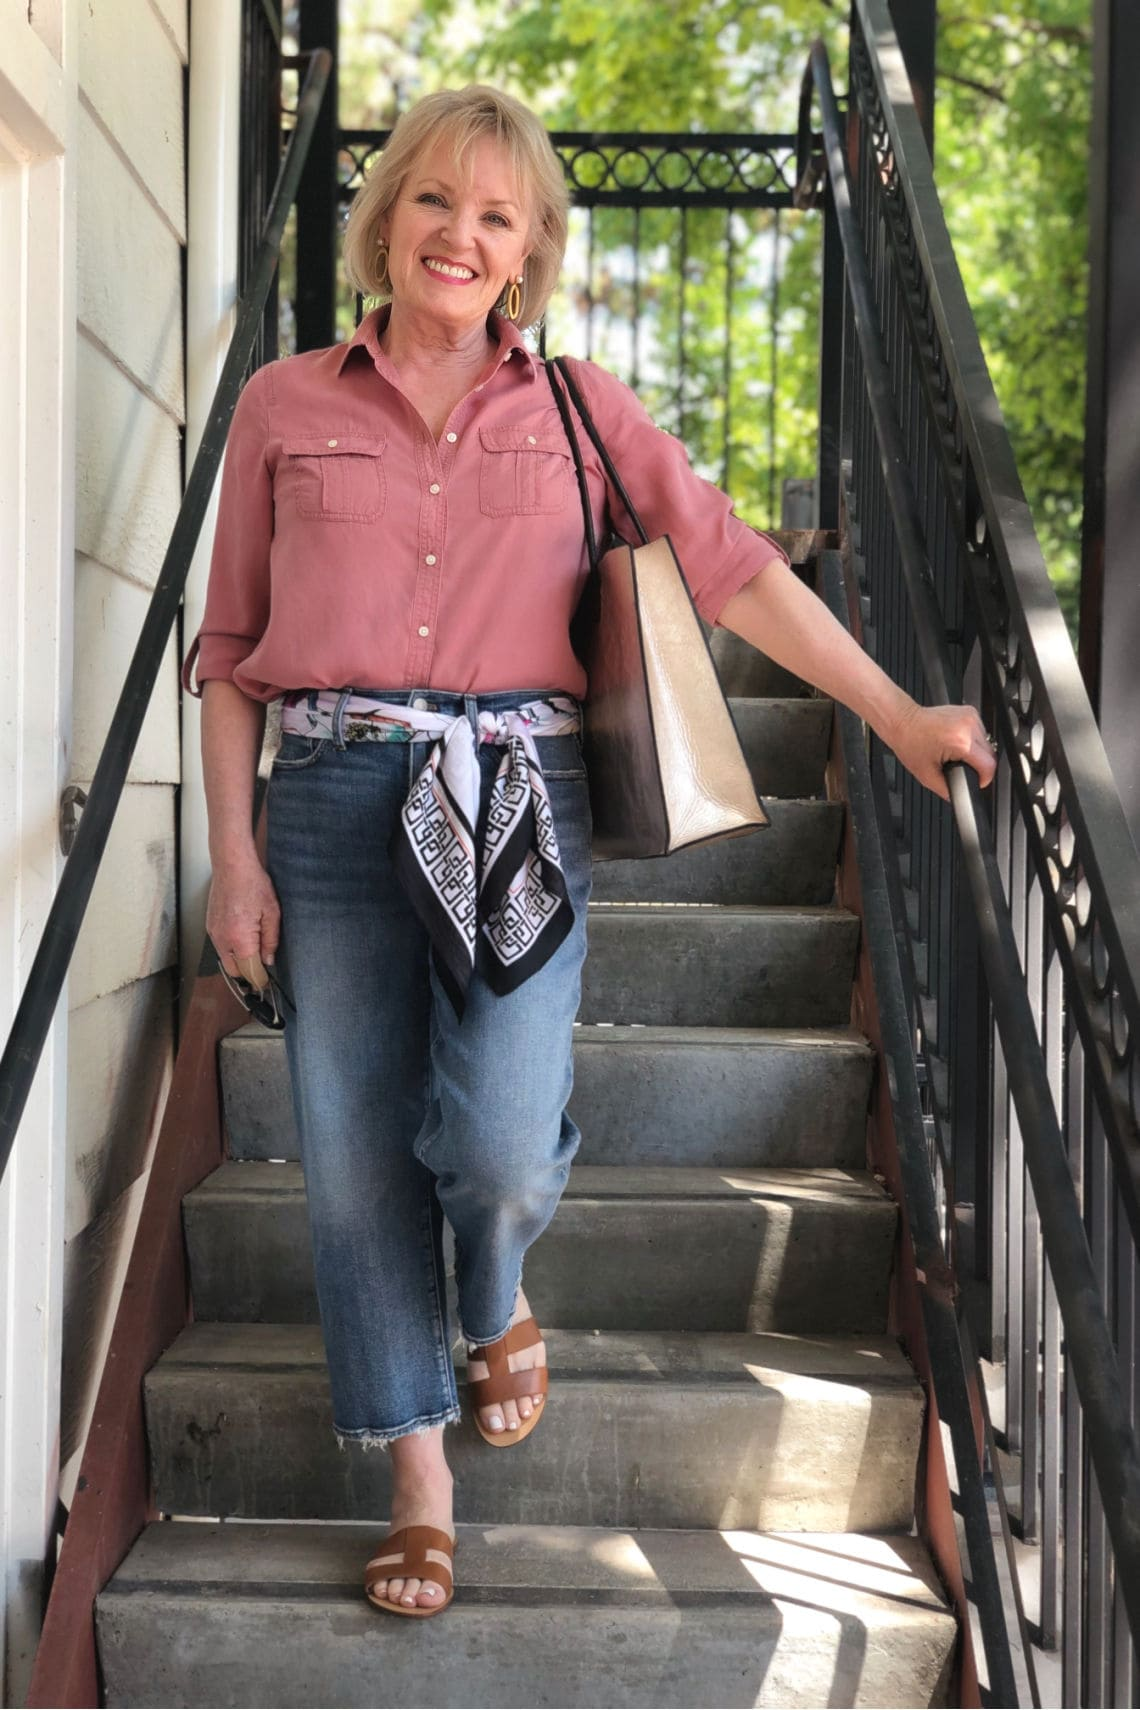 over 50 fashion blogger Jennifer Cobbolly wearing rose colored shirt and blue jeans